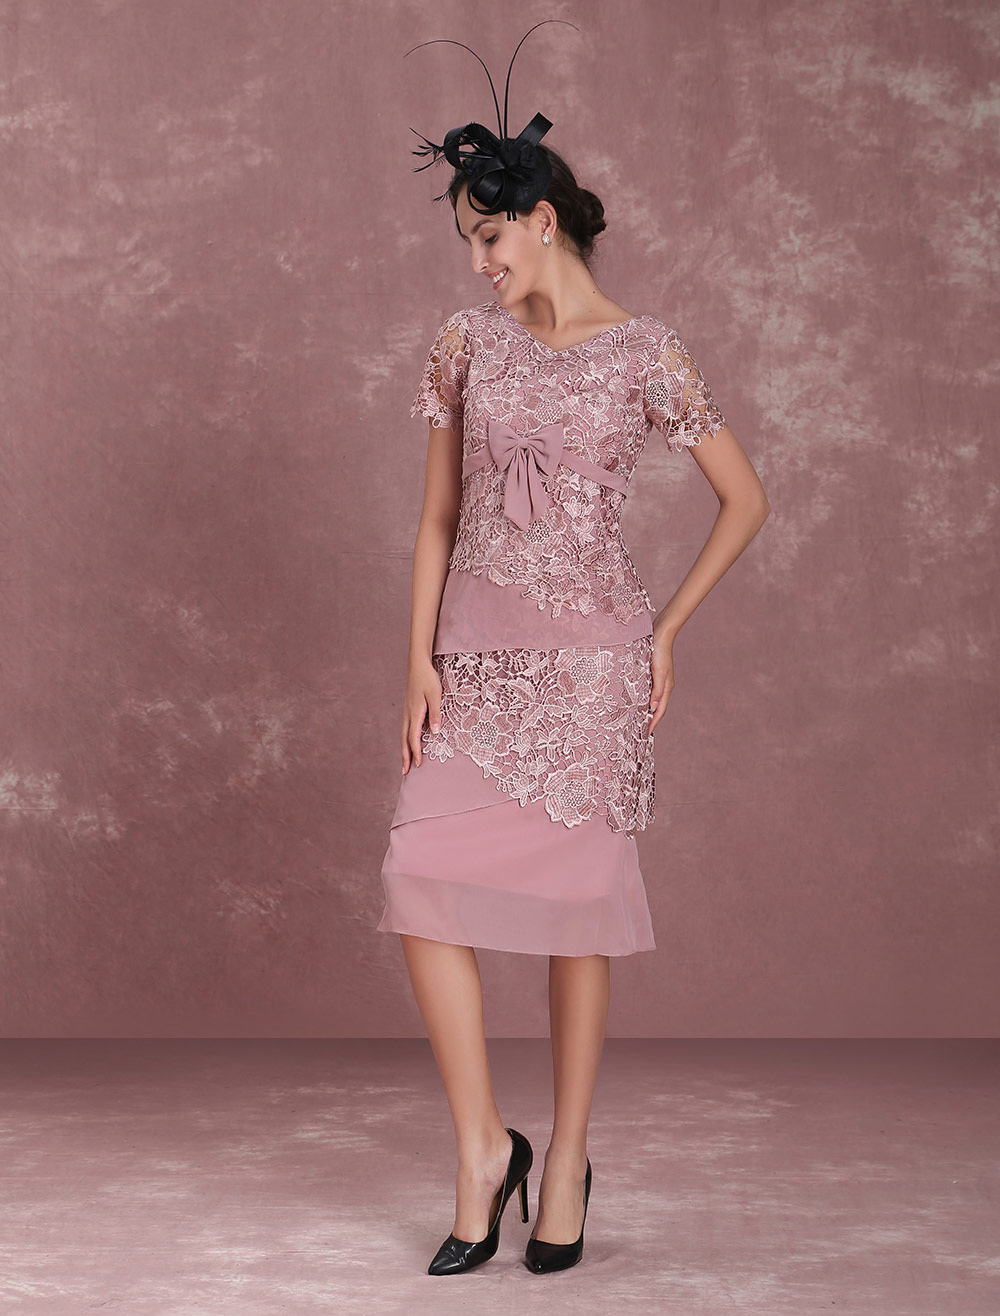 Mother Of The Bride Dresses Cameo Pink Sheath Lace Chiffon Short Sleeve Tea Length Wedding Guest Dresses photo